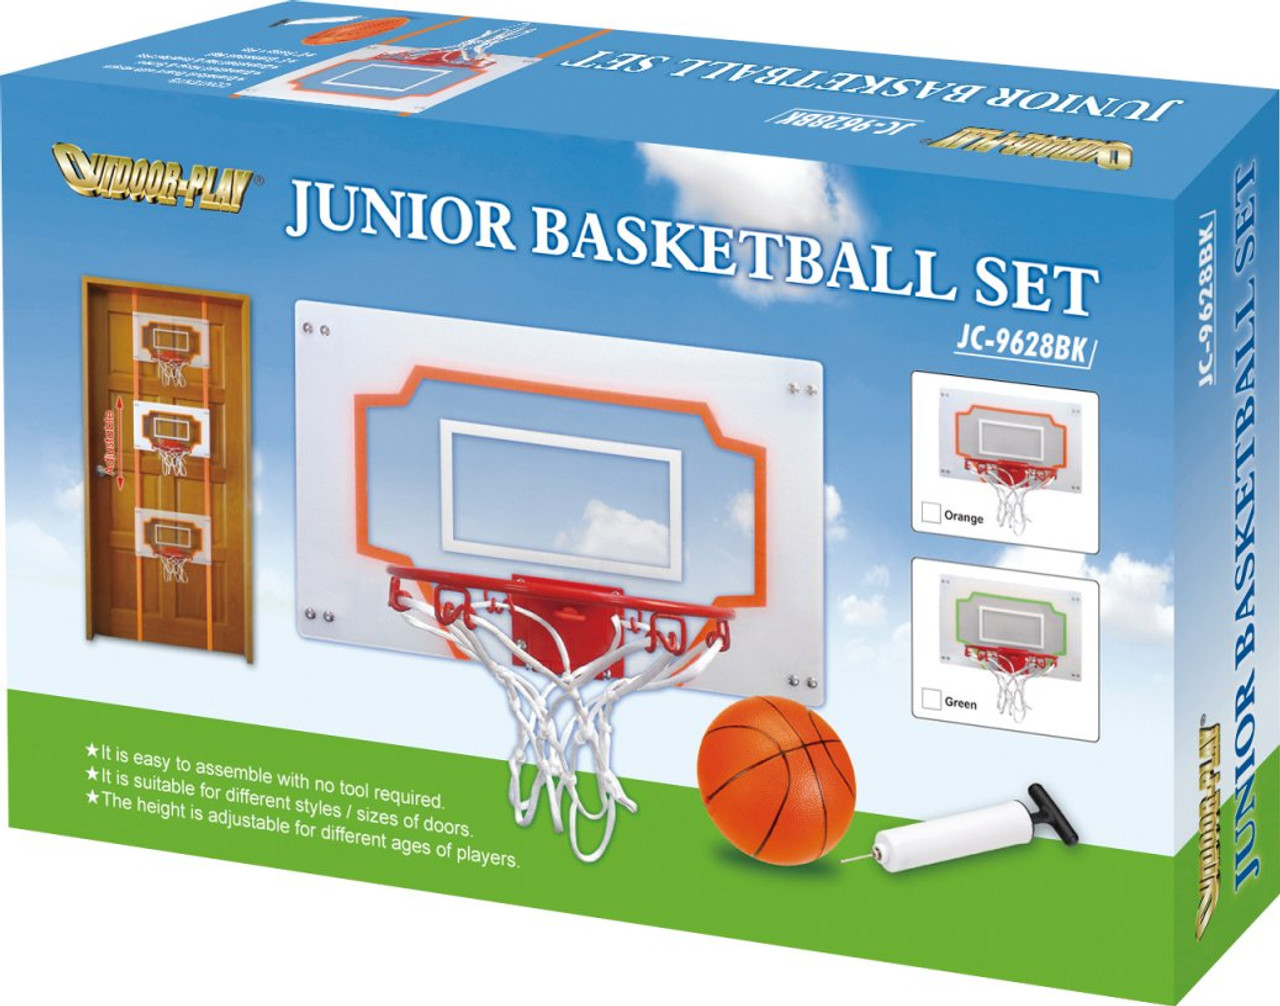 Childrens Indoor Basketball set easily attaches to the door